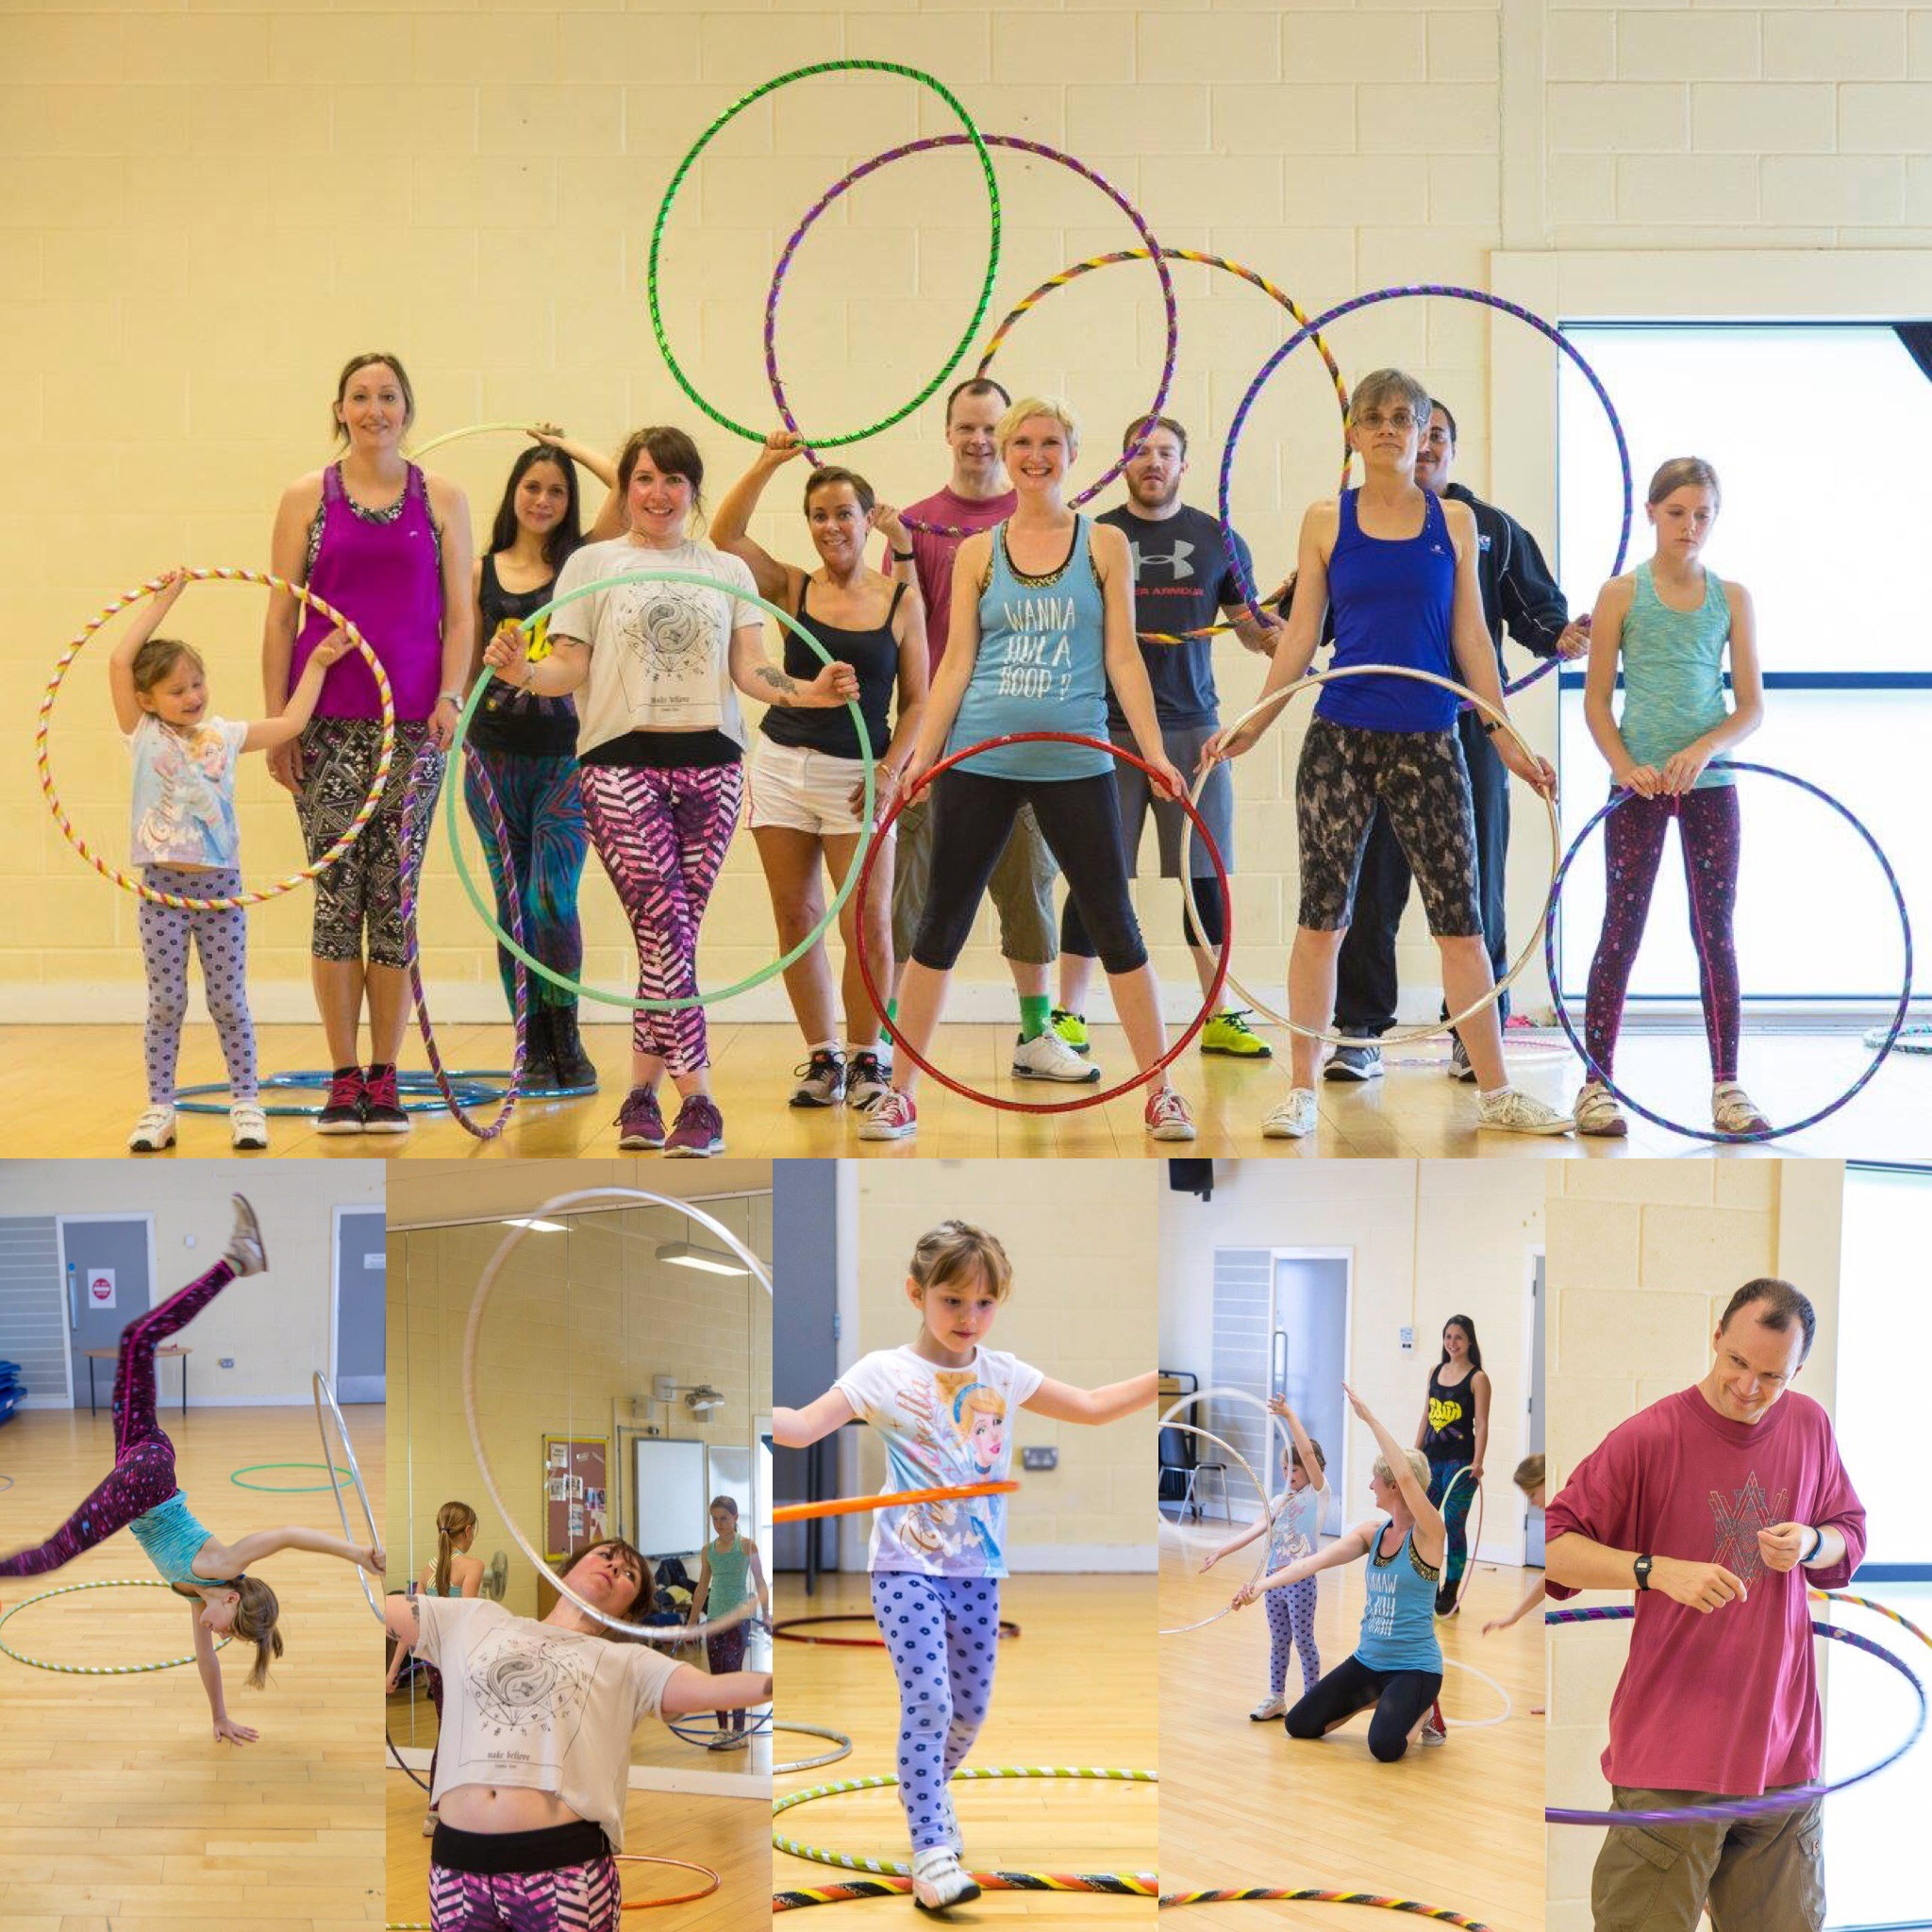 Hoop Love Coach Teacher hula hoop classes in UK